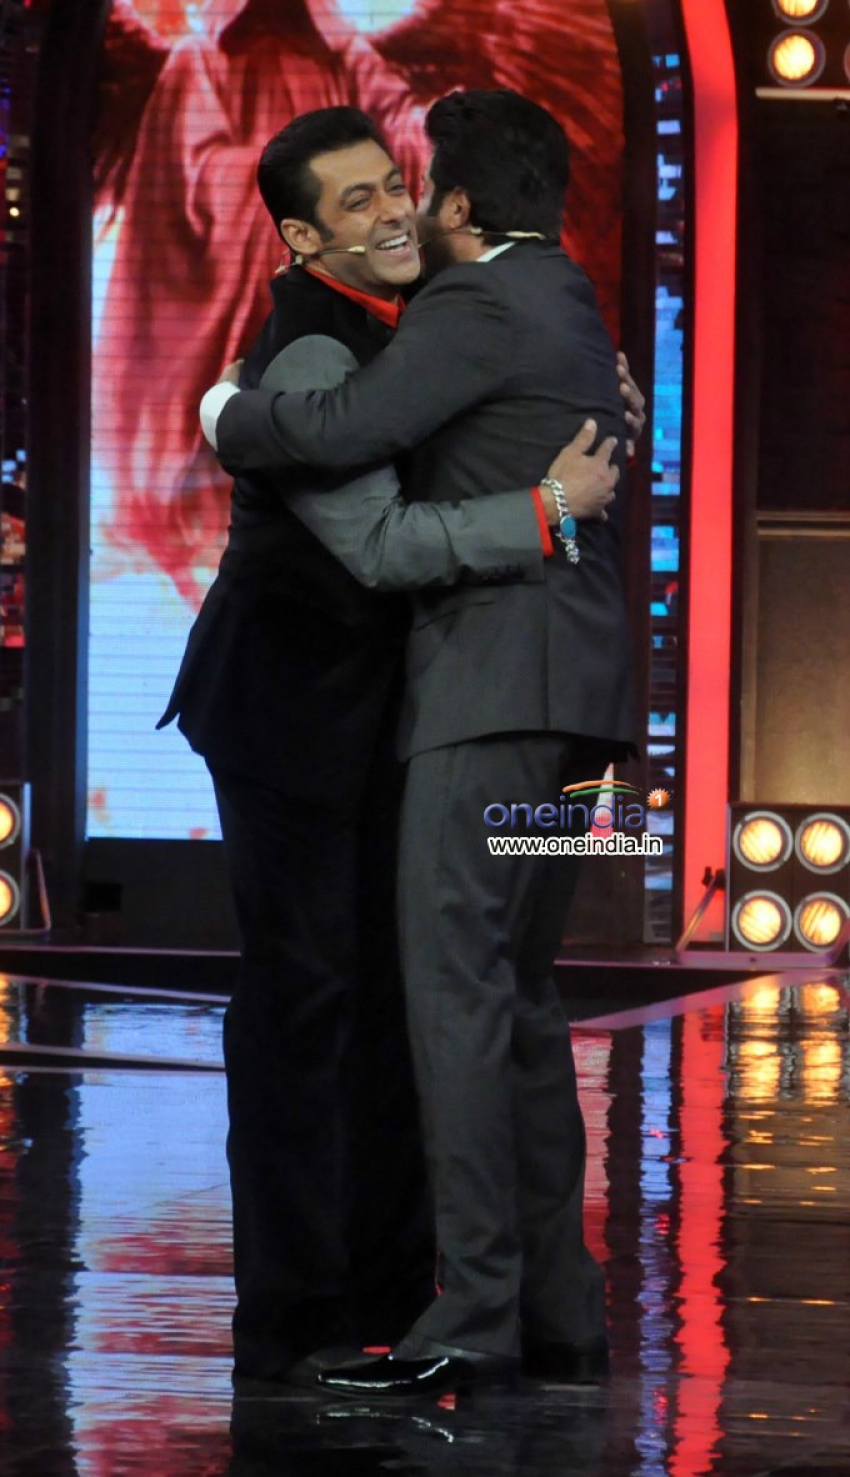 Anil Kapoor show 24 promotion on the sets of Bigg Boss 7 Photos